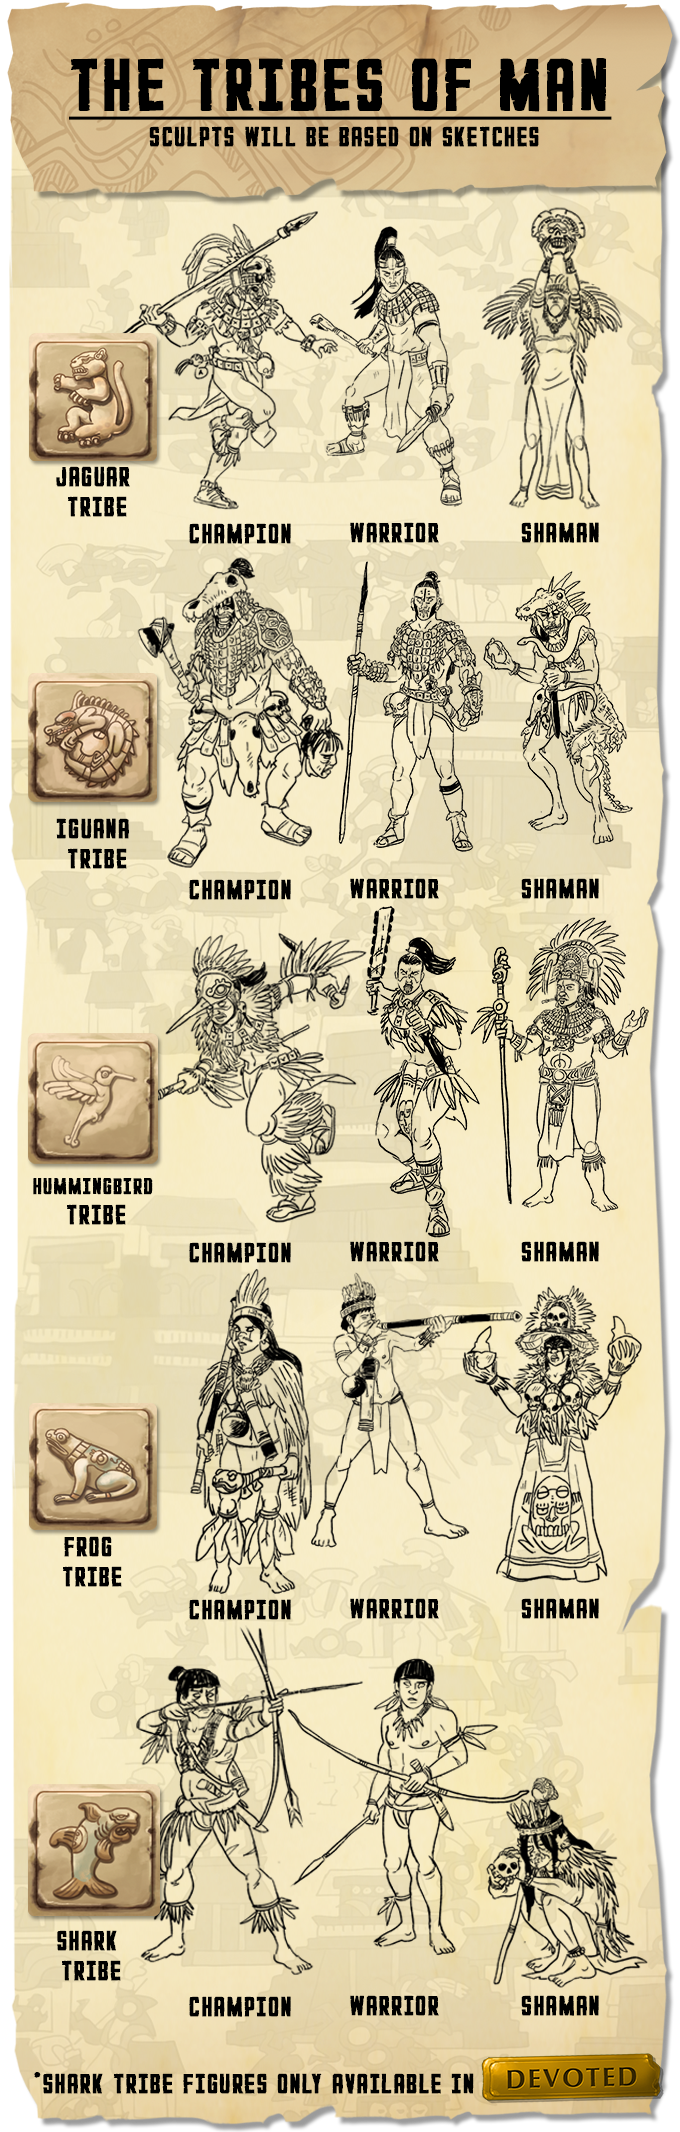 Each of the tribes has three unique sculpts: champion, shaman, and warrior. The Piranha tribe is included with the Devoted pledge. The tribe shown in our video content and graphics are the Jaguar tribe. We will share these other sculpts during the campaign.